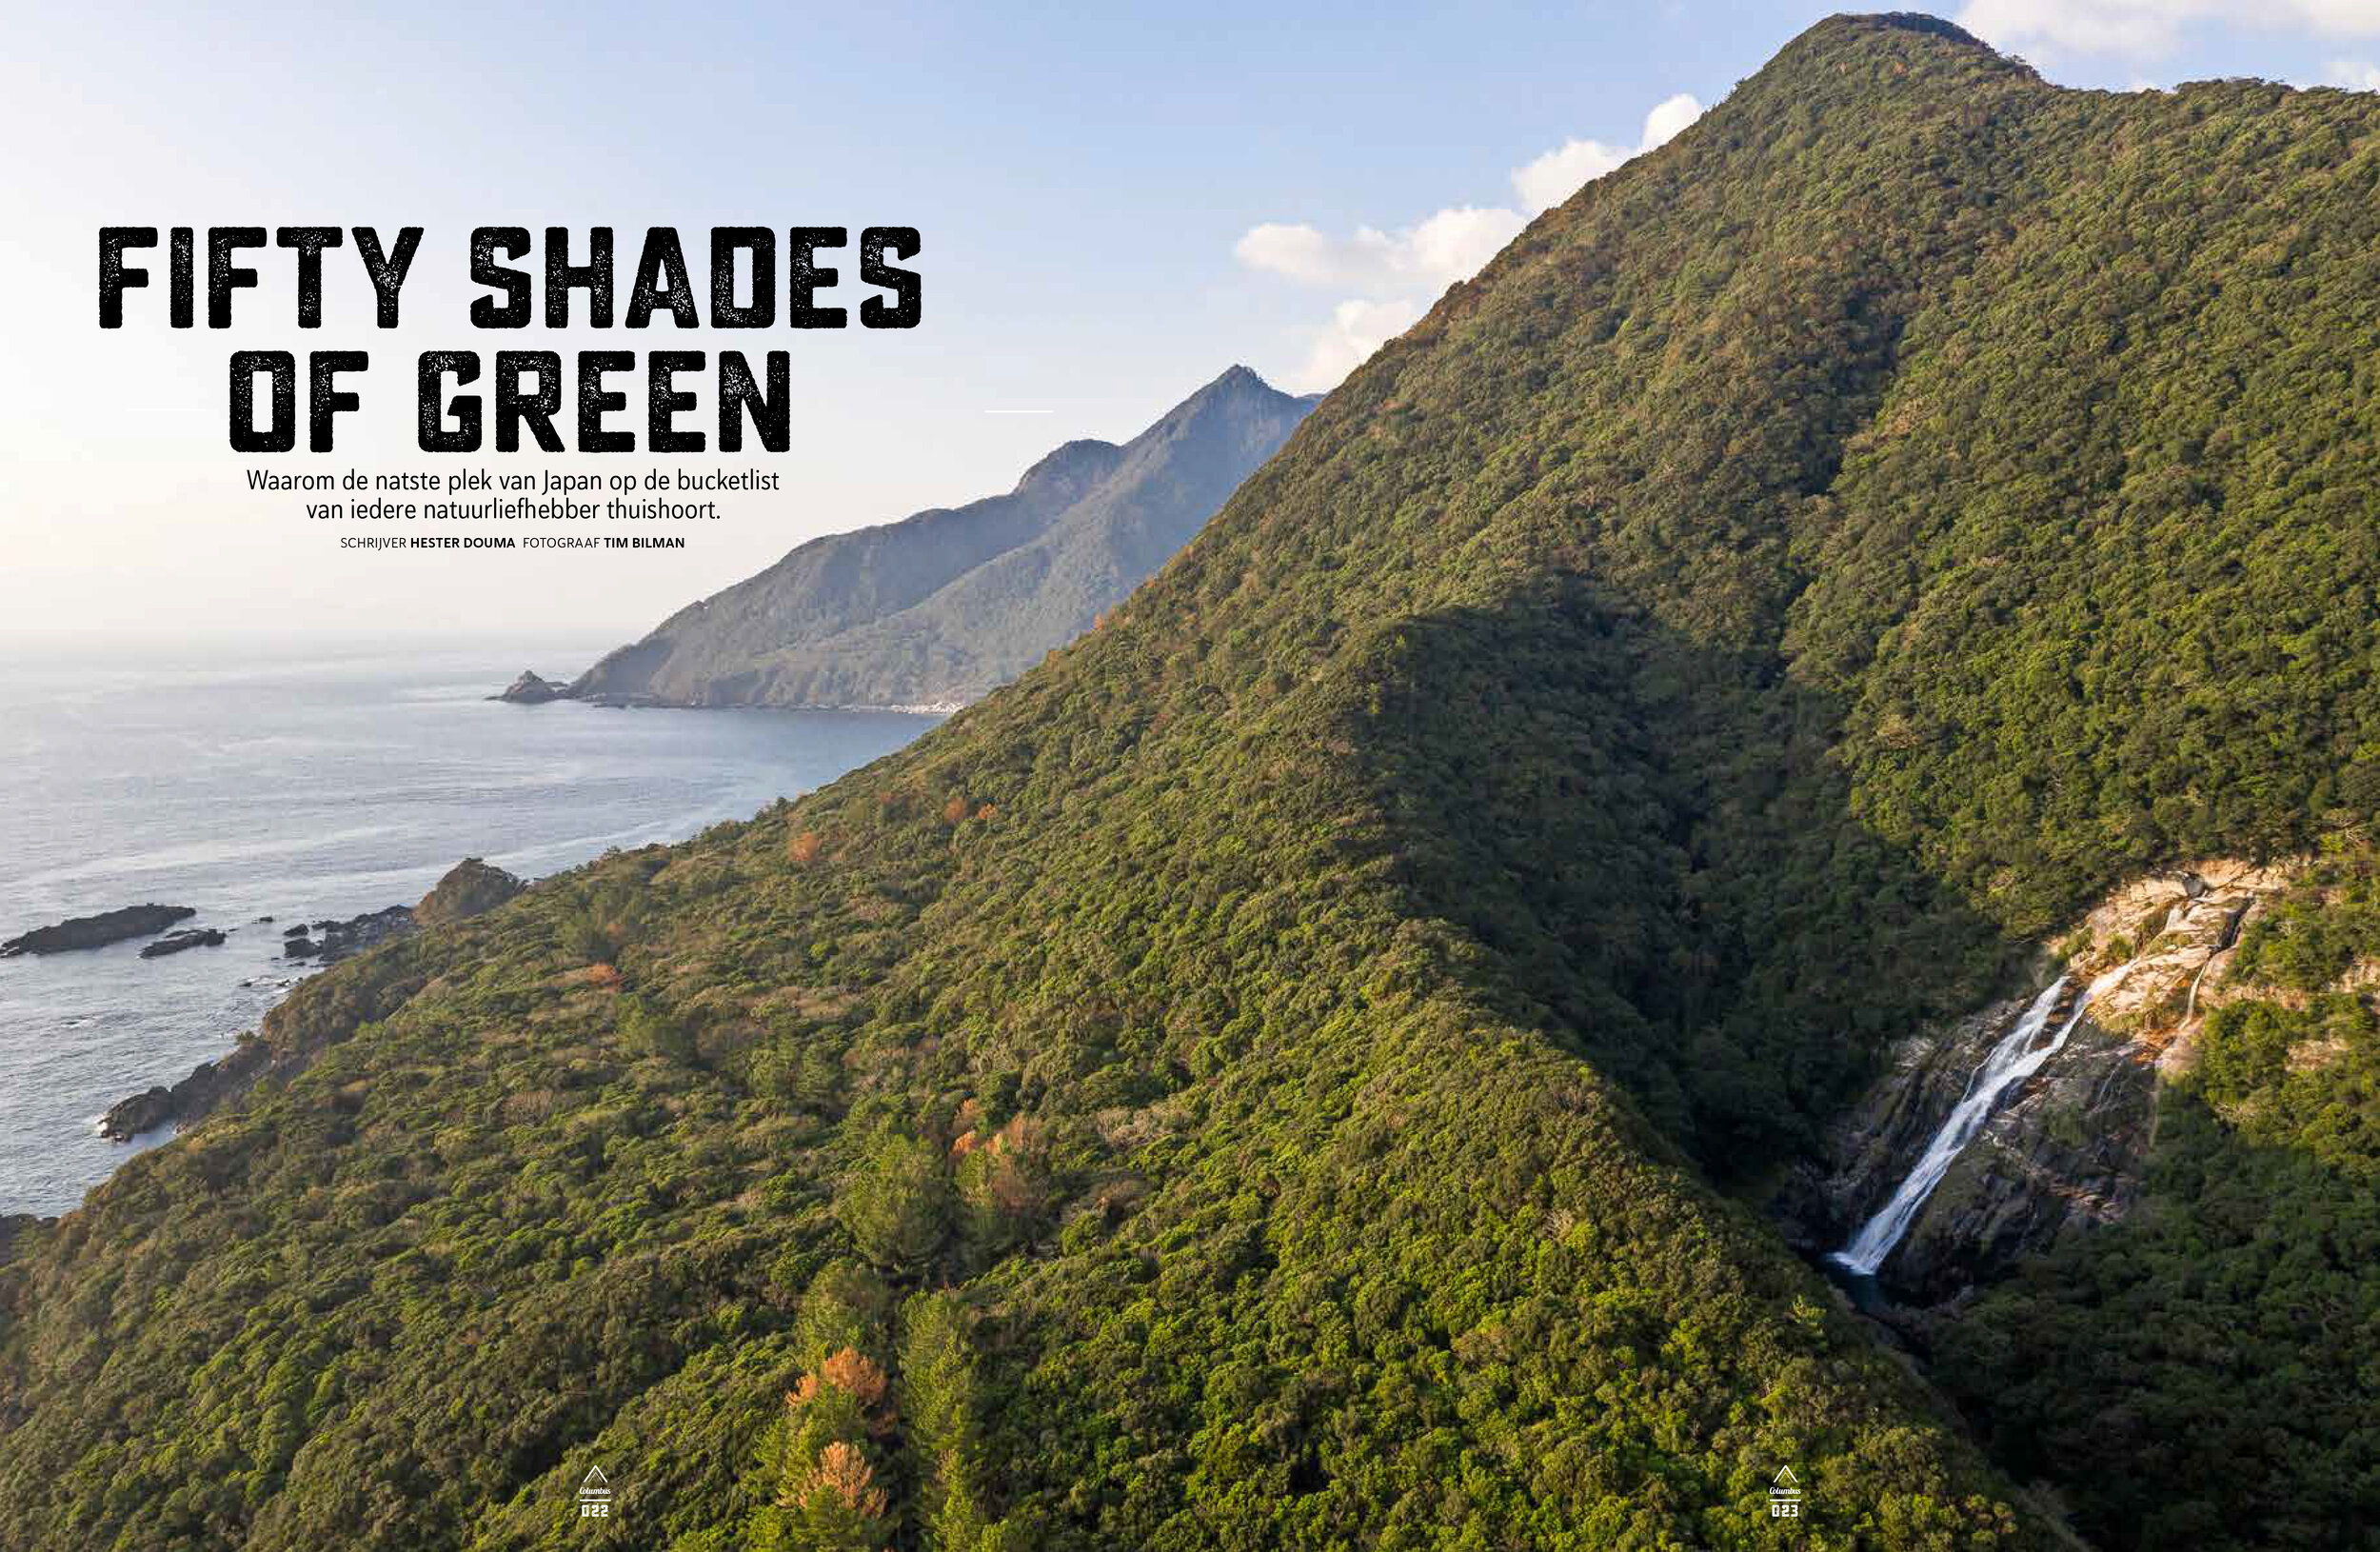 Yakushima - October '18 Hester and I traveled to Japan's wettest island. Yakushima is known for her thousand years old cedar trees and many shades of green. The article was published in September '19 in Columbus travel edition 84.